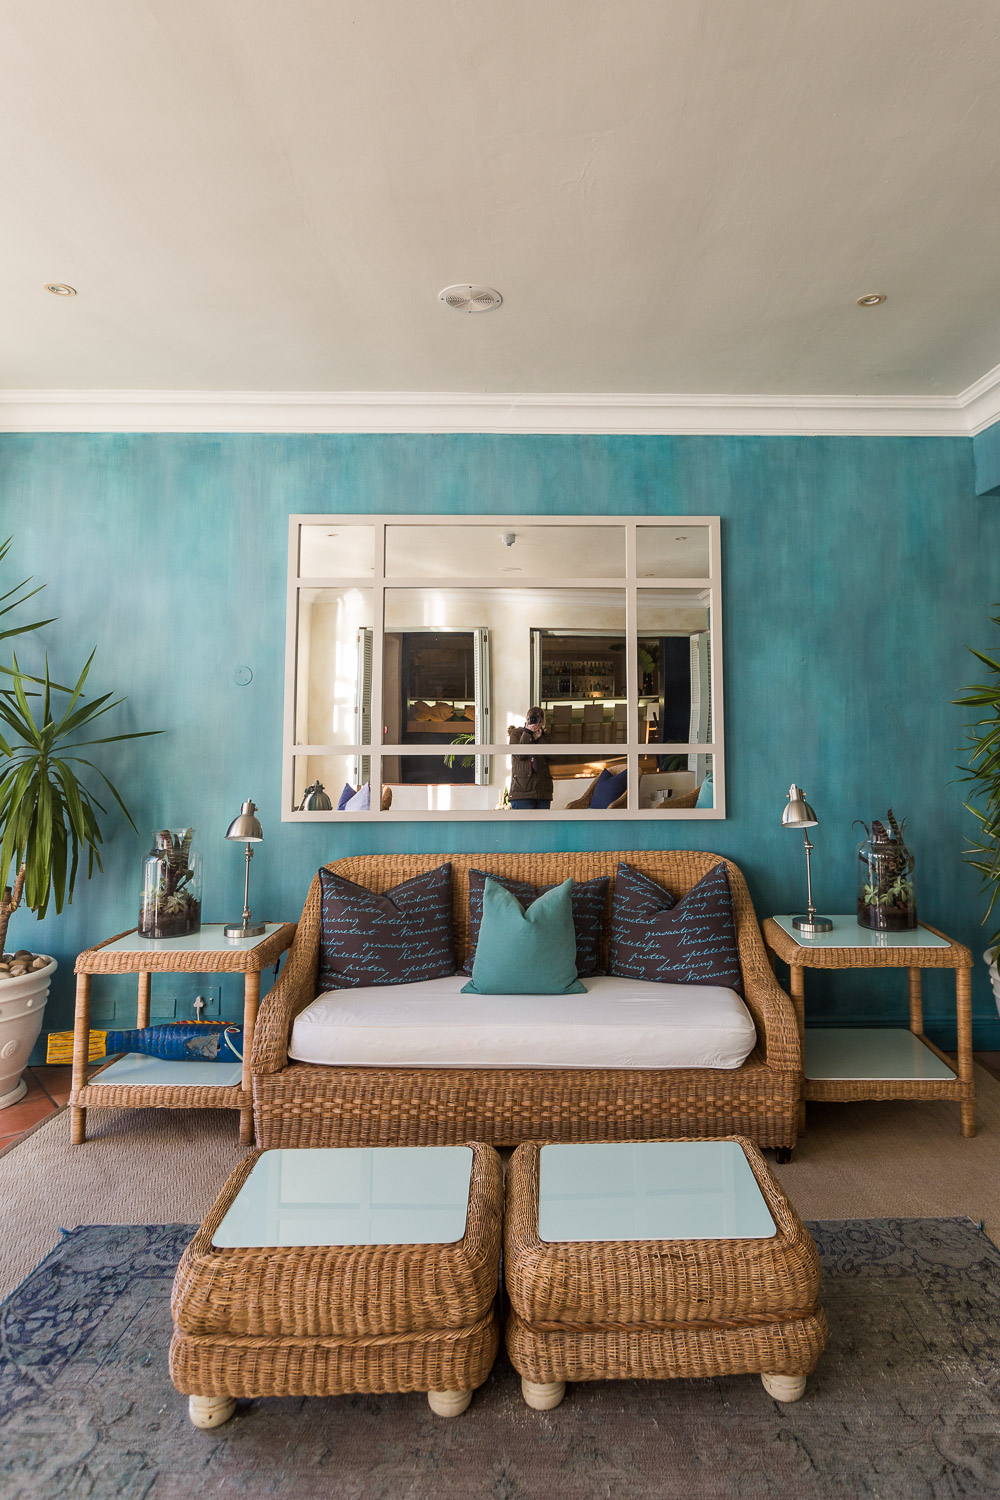 A night at The Plettenberg with the McGrath collection